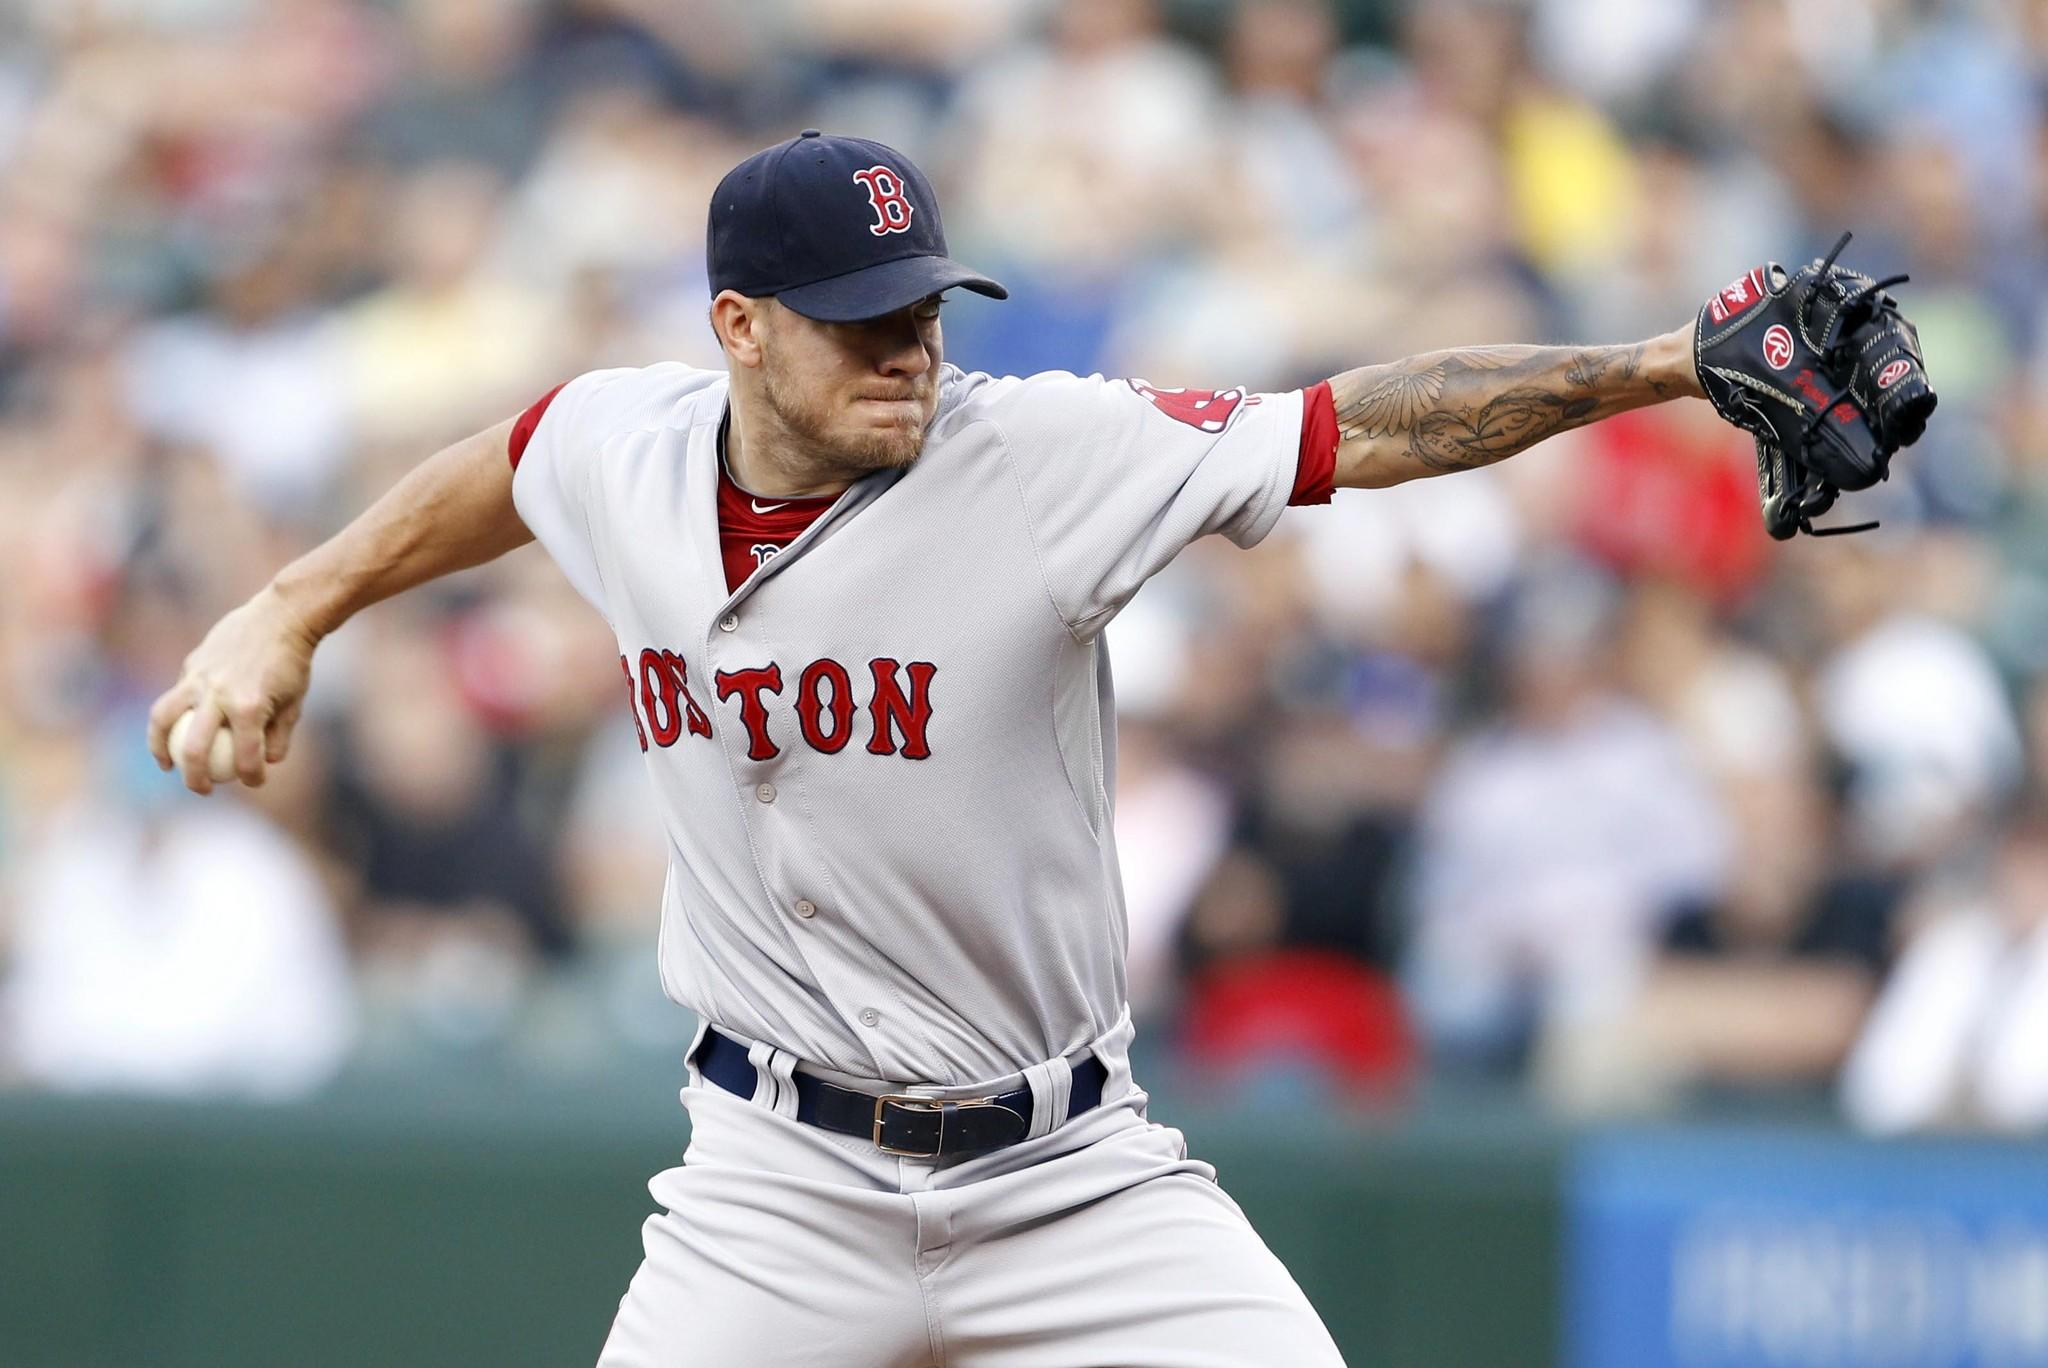 Red Sox pitcher Jake Peavy throws against the Mariners last week.